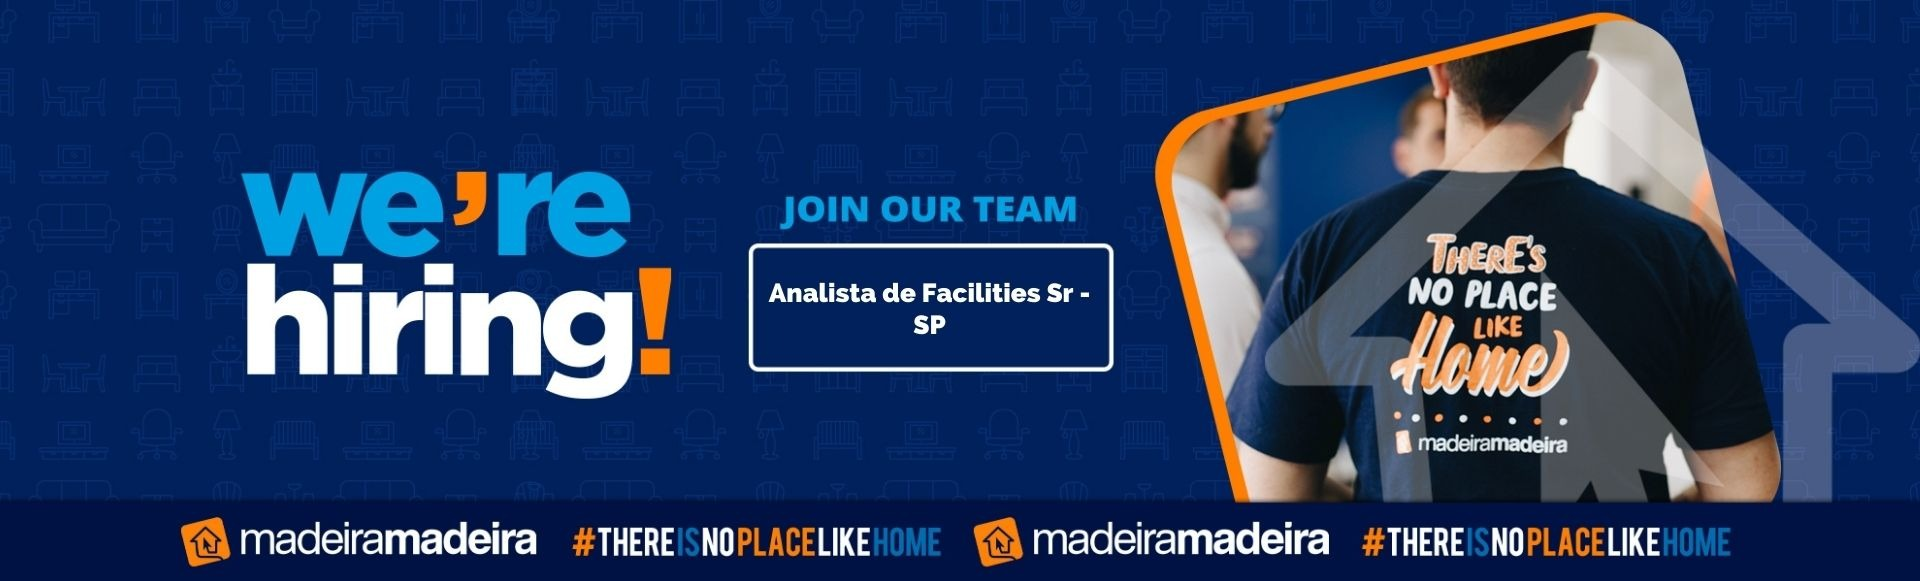 Analista de Facilities SR